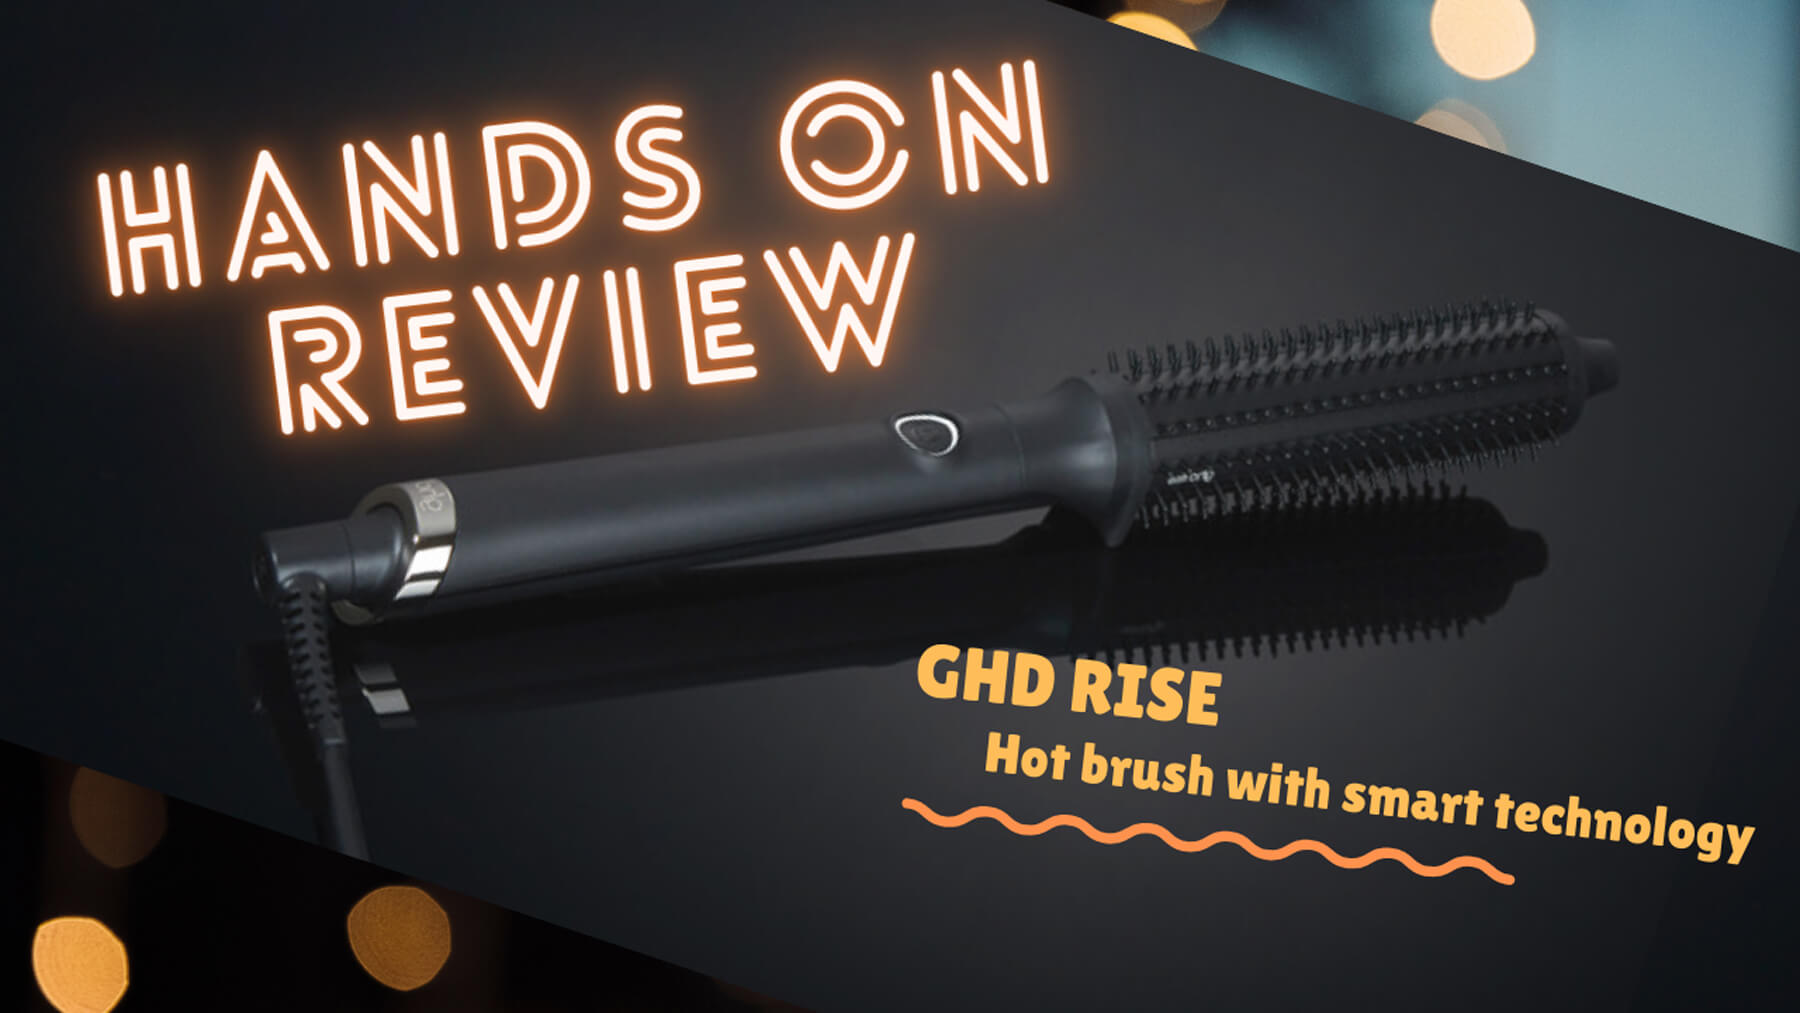 GHD Rise Hands on Review collage and graphic